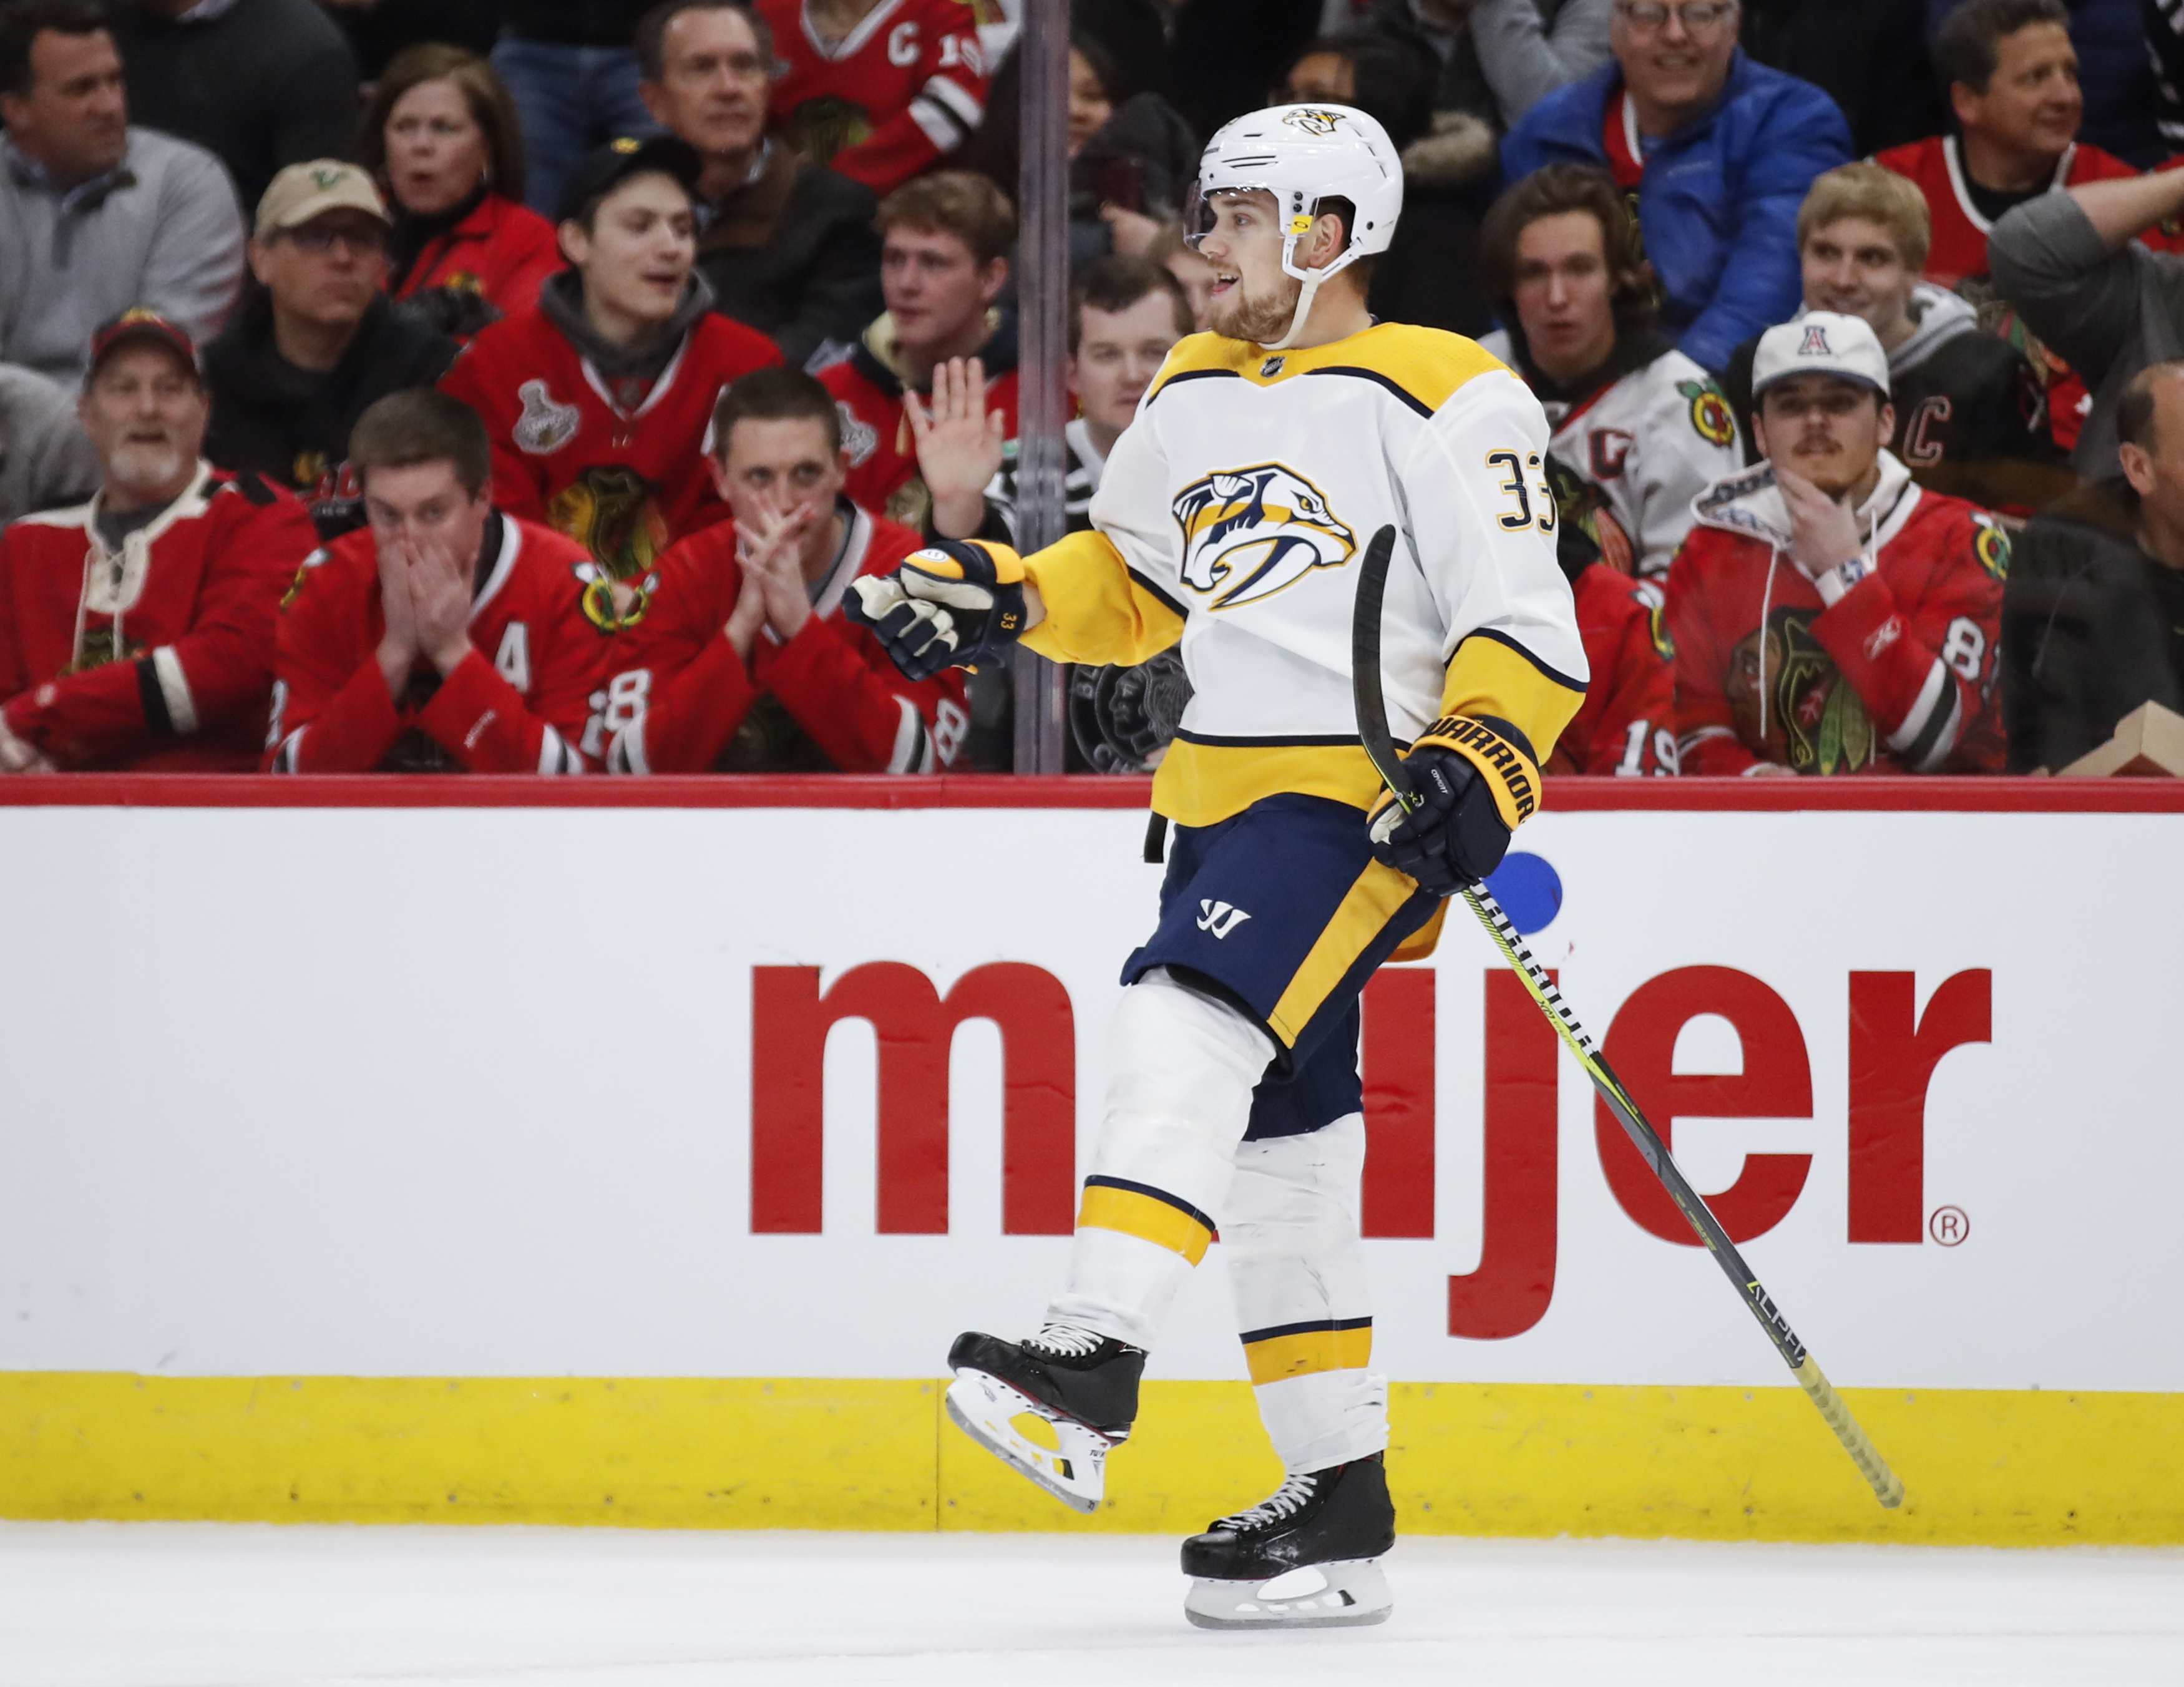 Forsberg leads Predators past Blackhawks 4-3